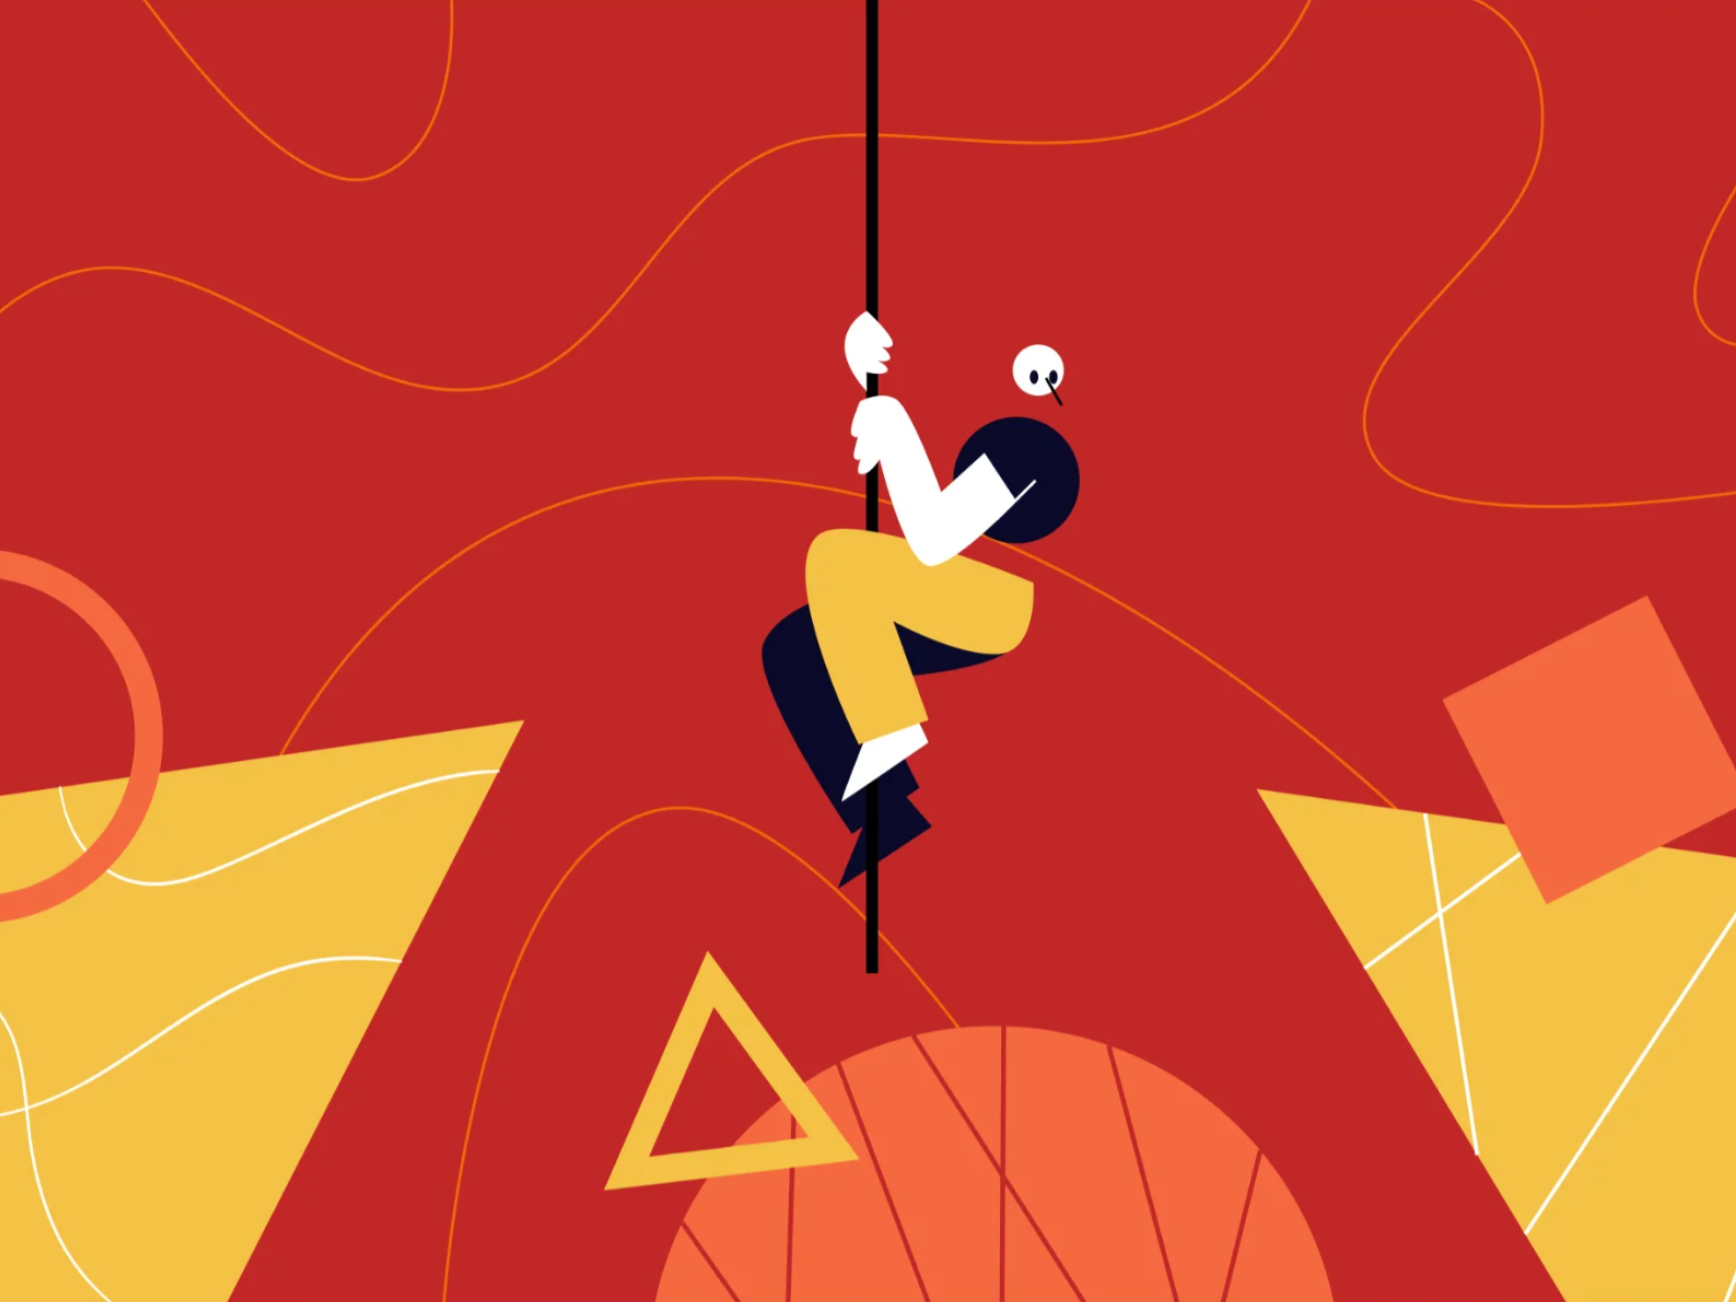 Illustration of human figure climbing down a rope coming from the top of the frame towards the bottom